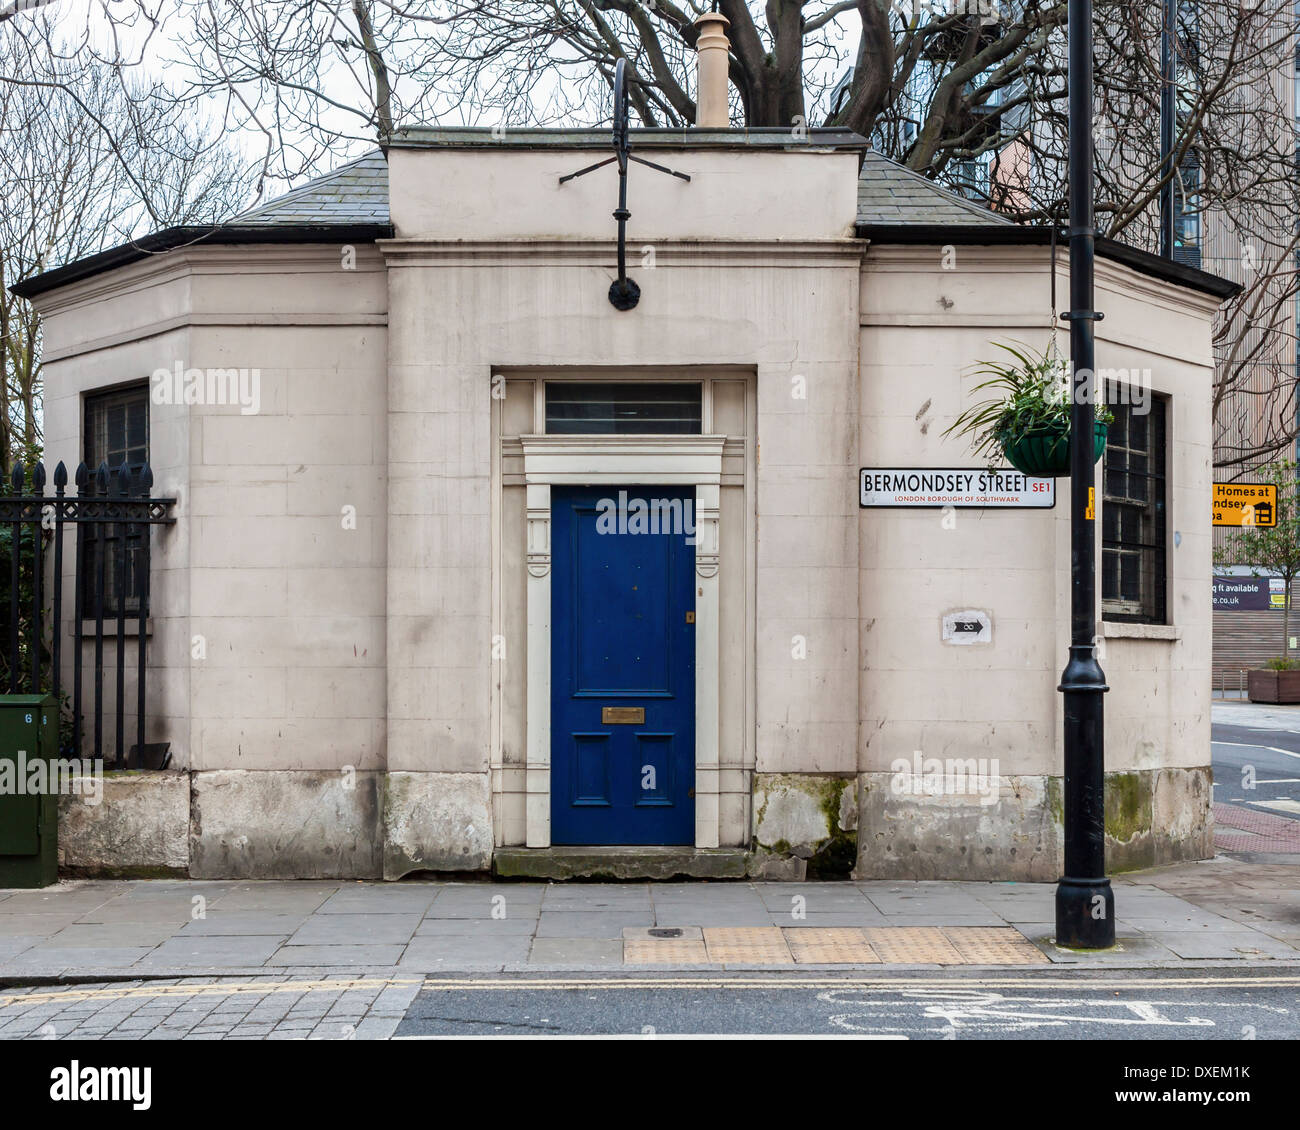 Old stone building with blue door at Corner of Bermondsey Street, London SE1 - Stock Image